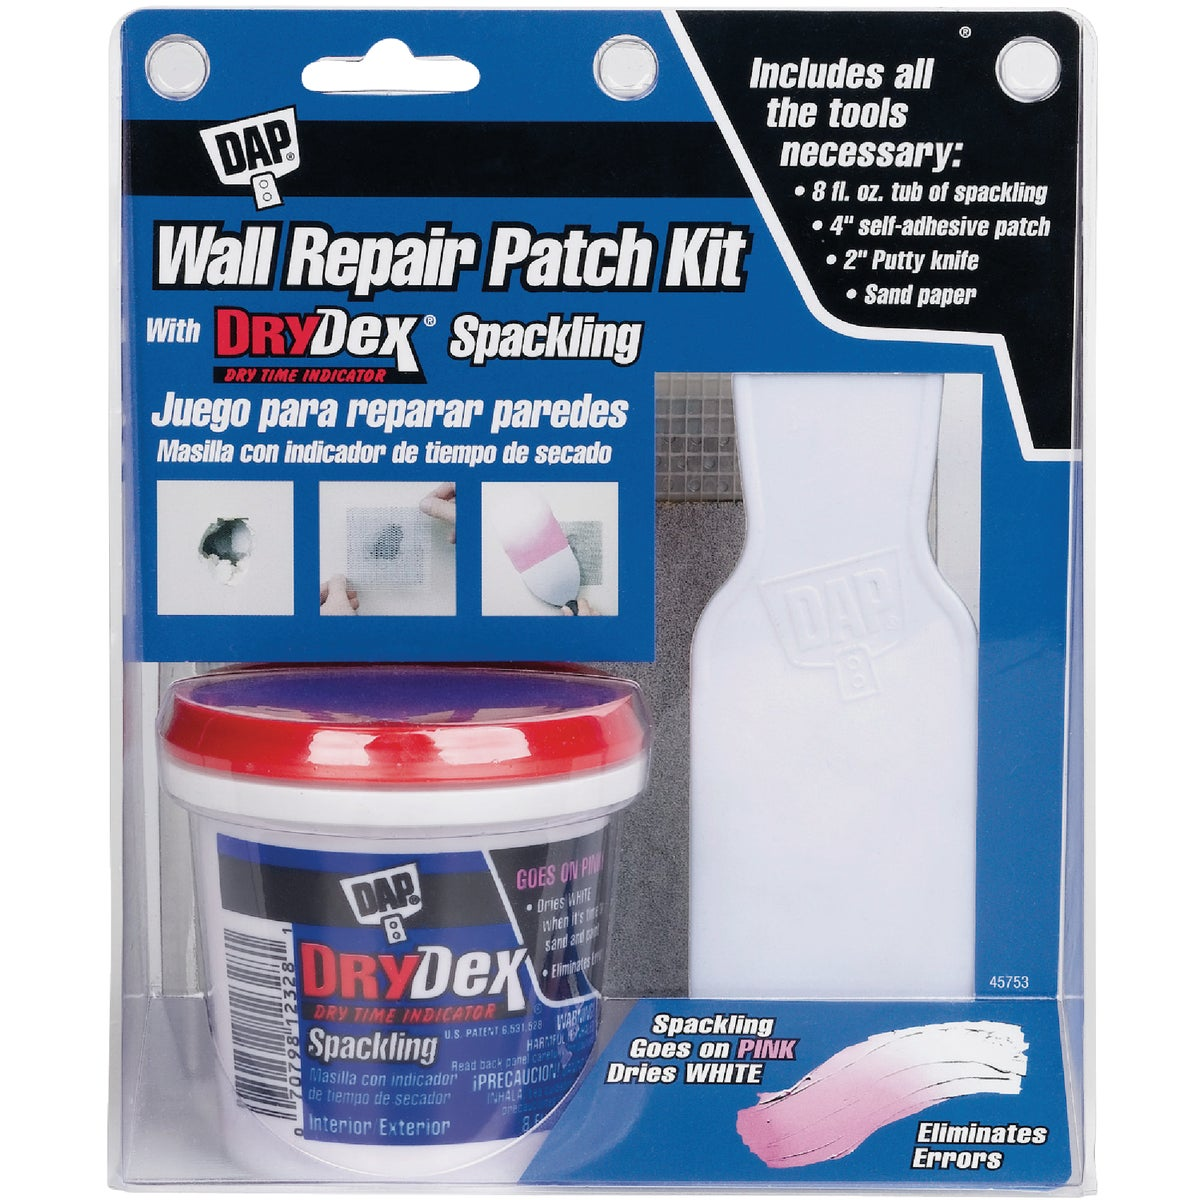 DRYDEX WALL REPAIR KIT - 12345 by Dap Inc